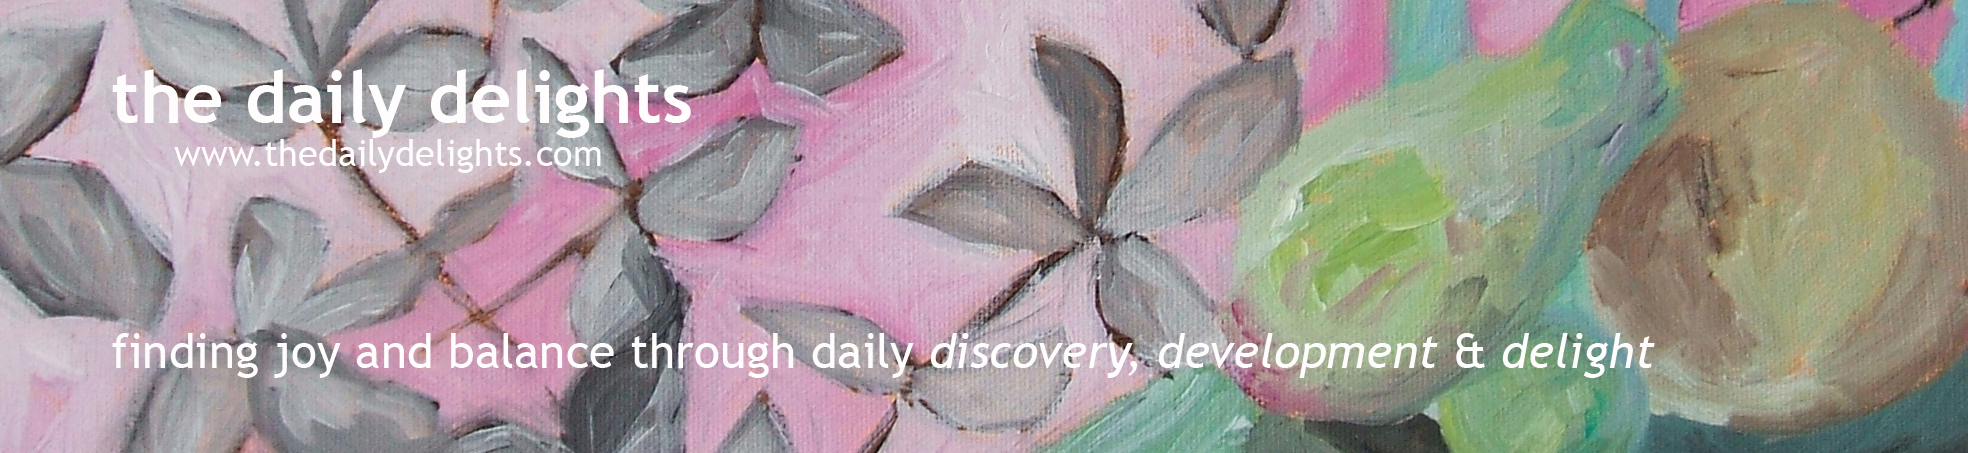 delight-banner-text